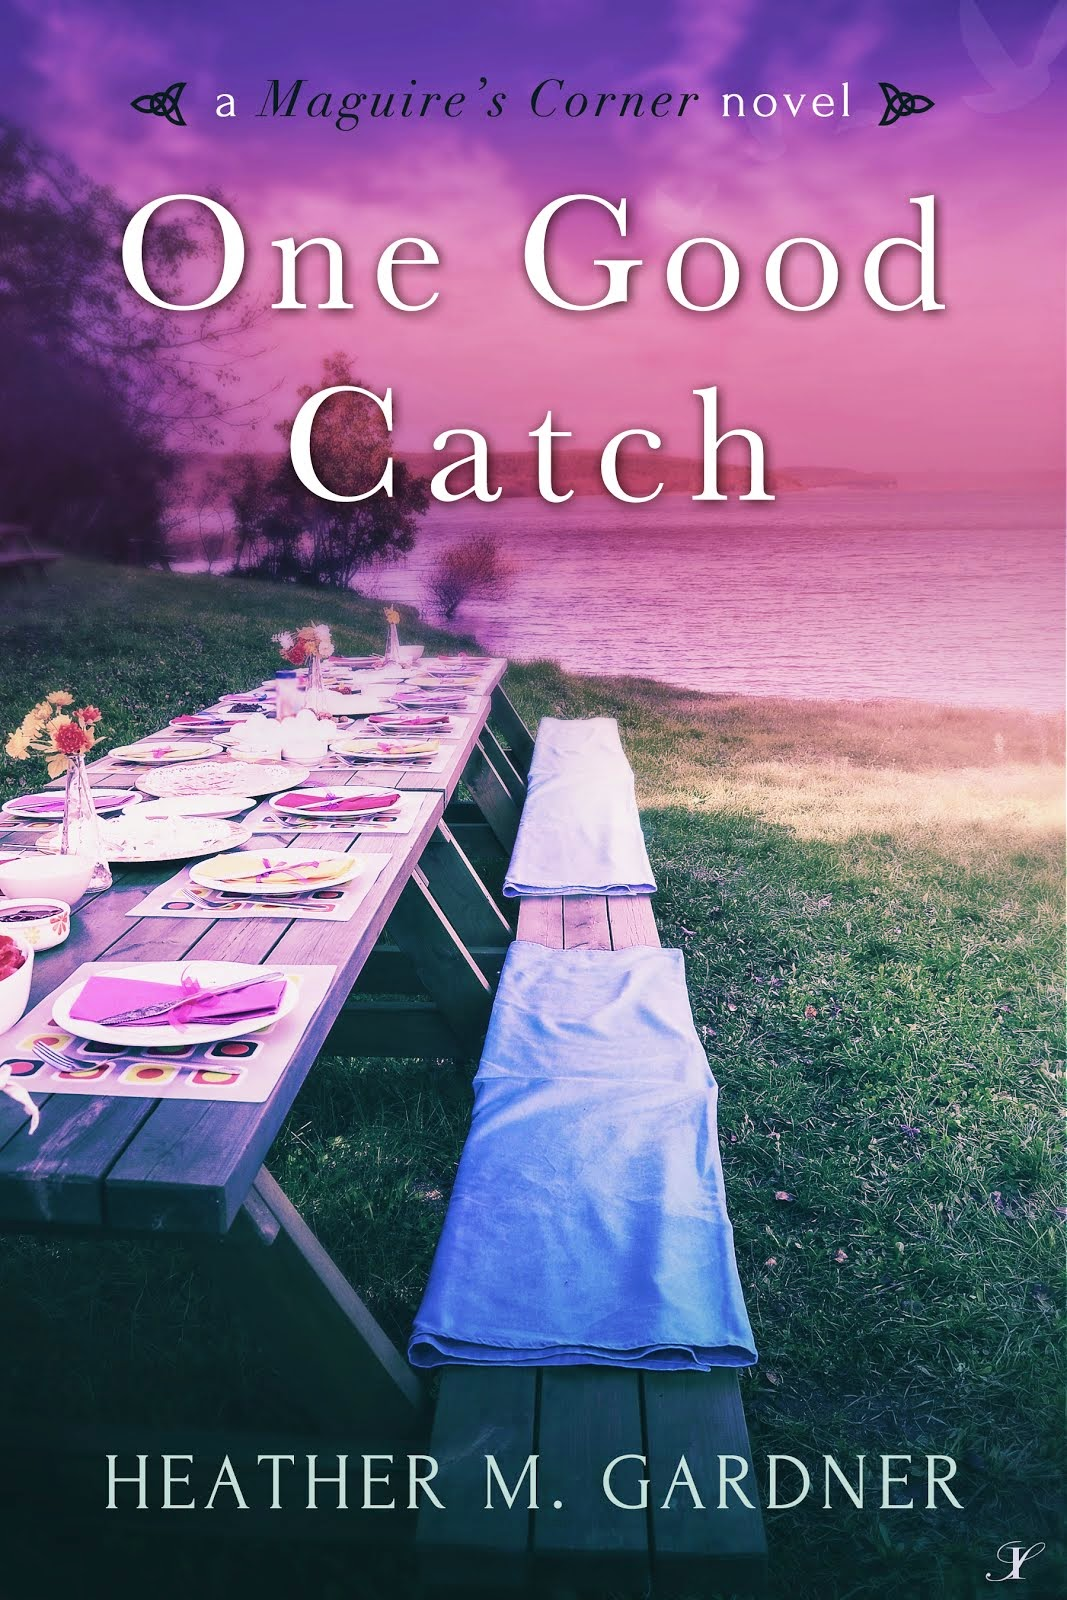 One Good Catch ebook/pbk